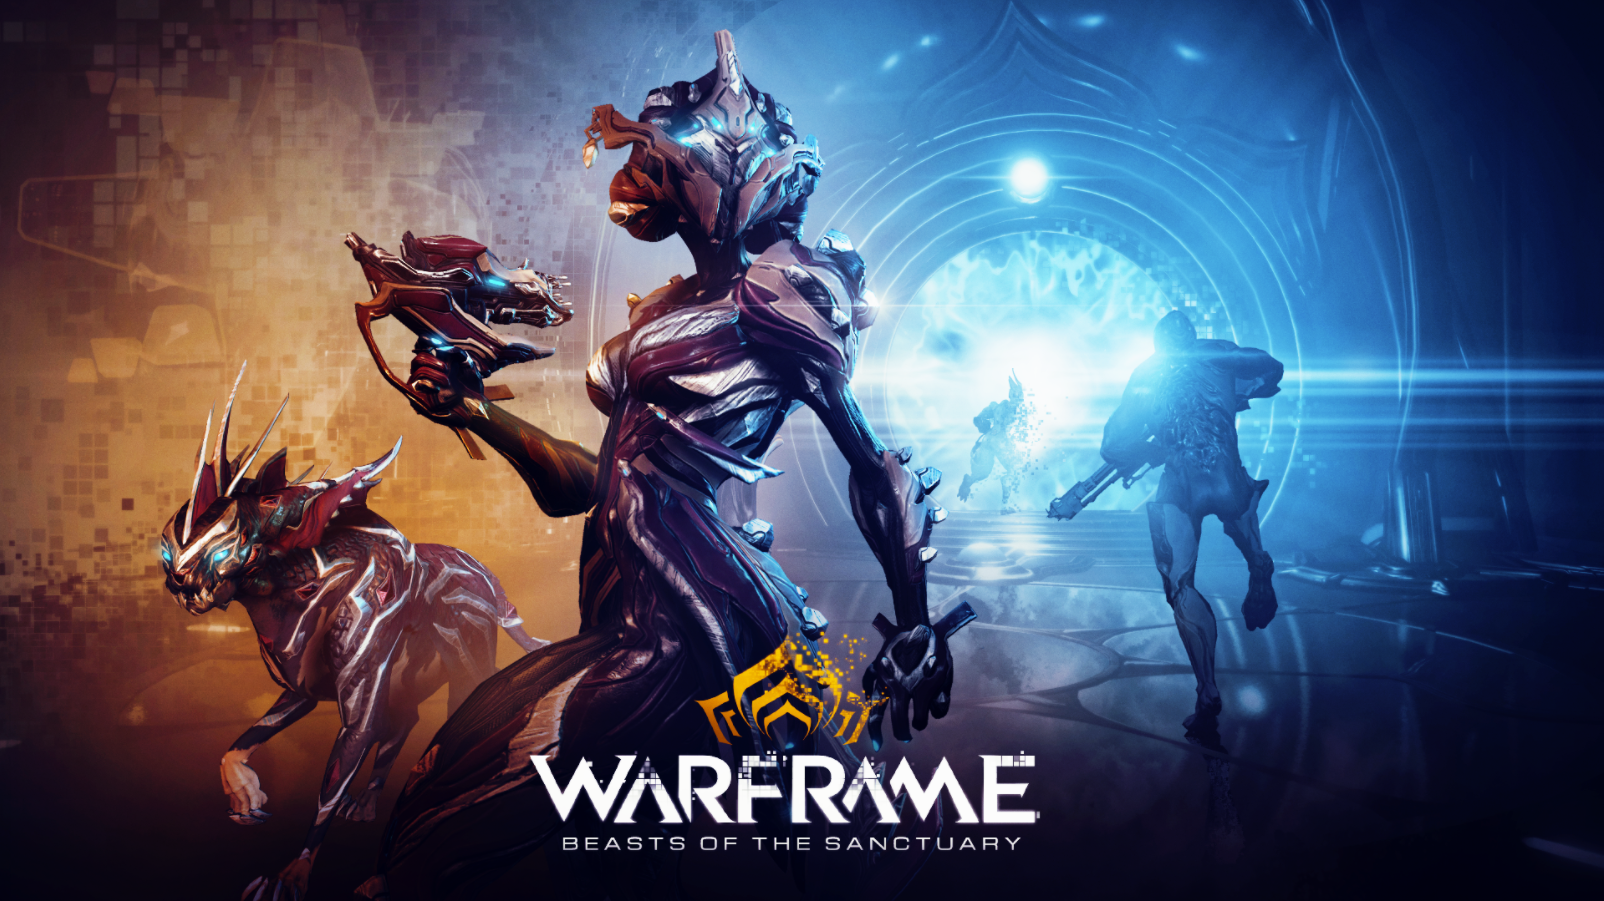 Apr 17 2018 Warframes Beasts Of The Sanctuary Update Adds New